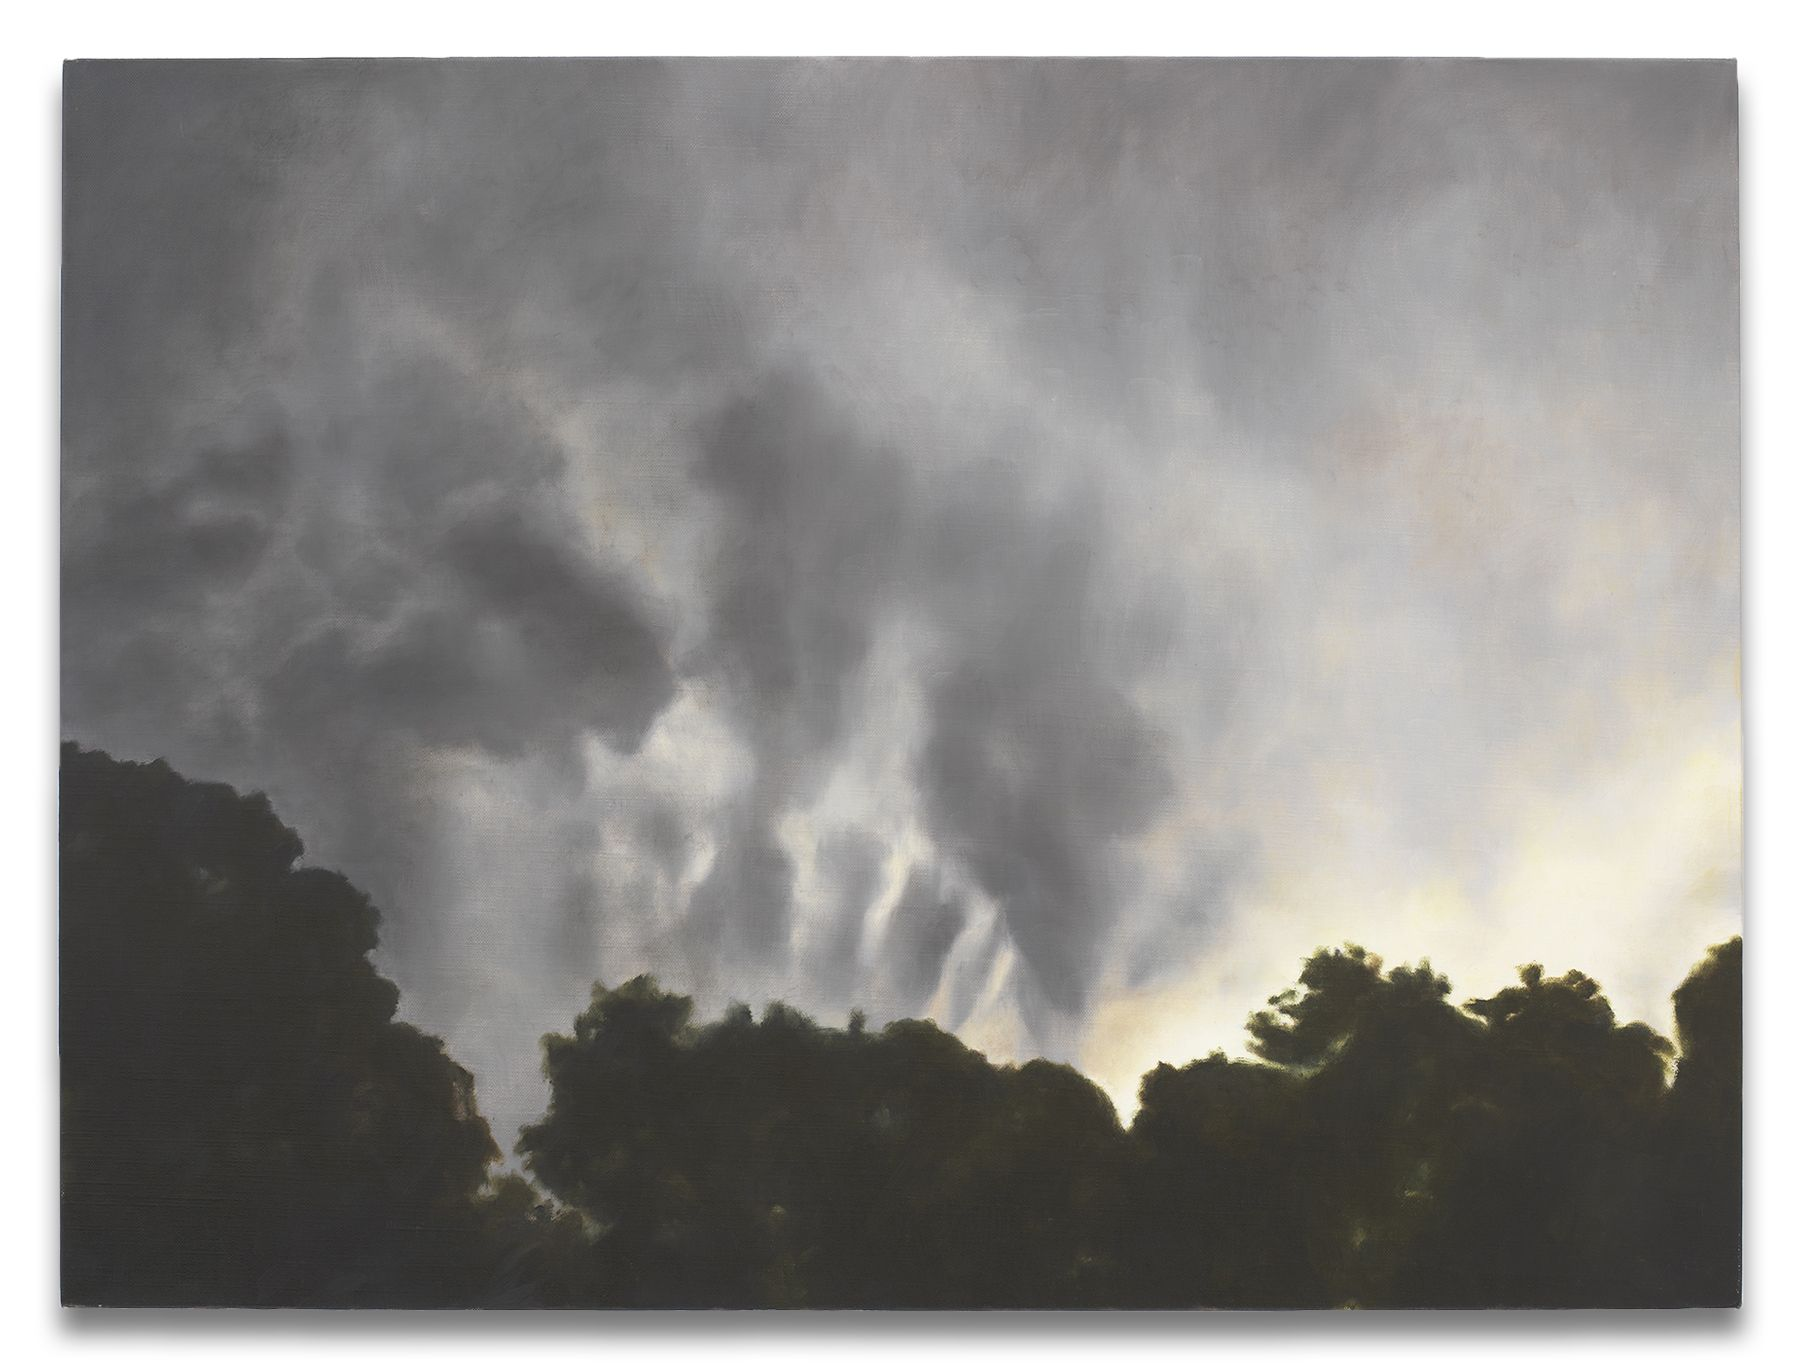 Clouds Shaping Night, 2013,Oil on linen,24 1/4 x 32 inches,61.6 x 81.3 cm,MMG#30403